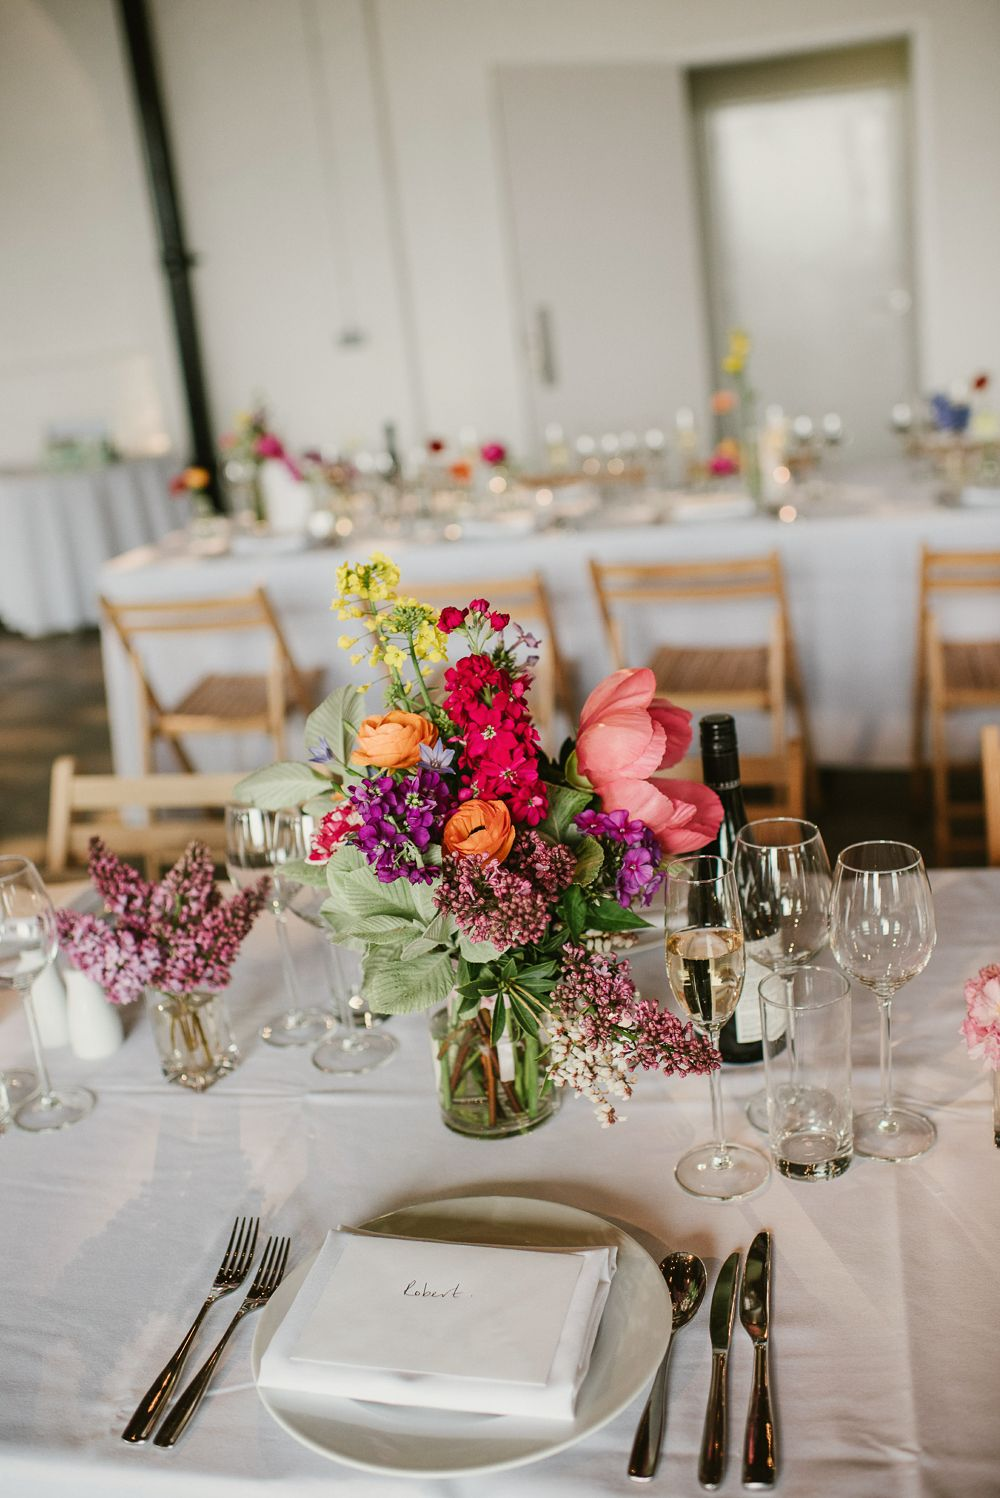 Riverside London Wedding with an Abundance of Colourful Flowers | Whimsical Wonderland Weddings